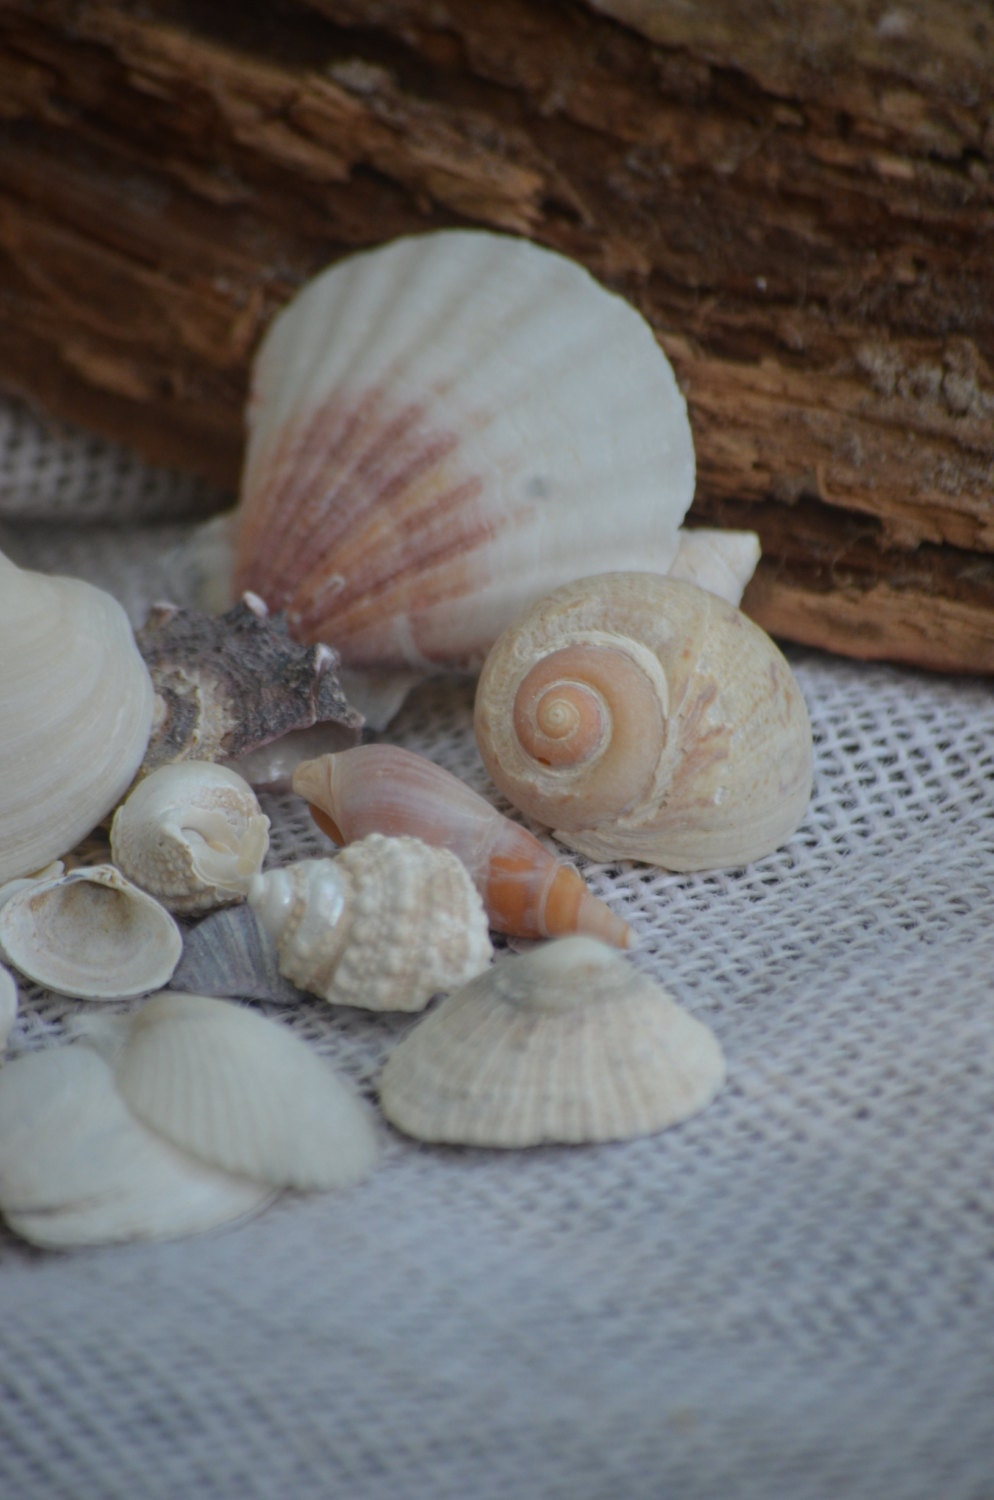 Seashell Variety Small Seashells 10 Oz Approx 50 To 60